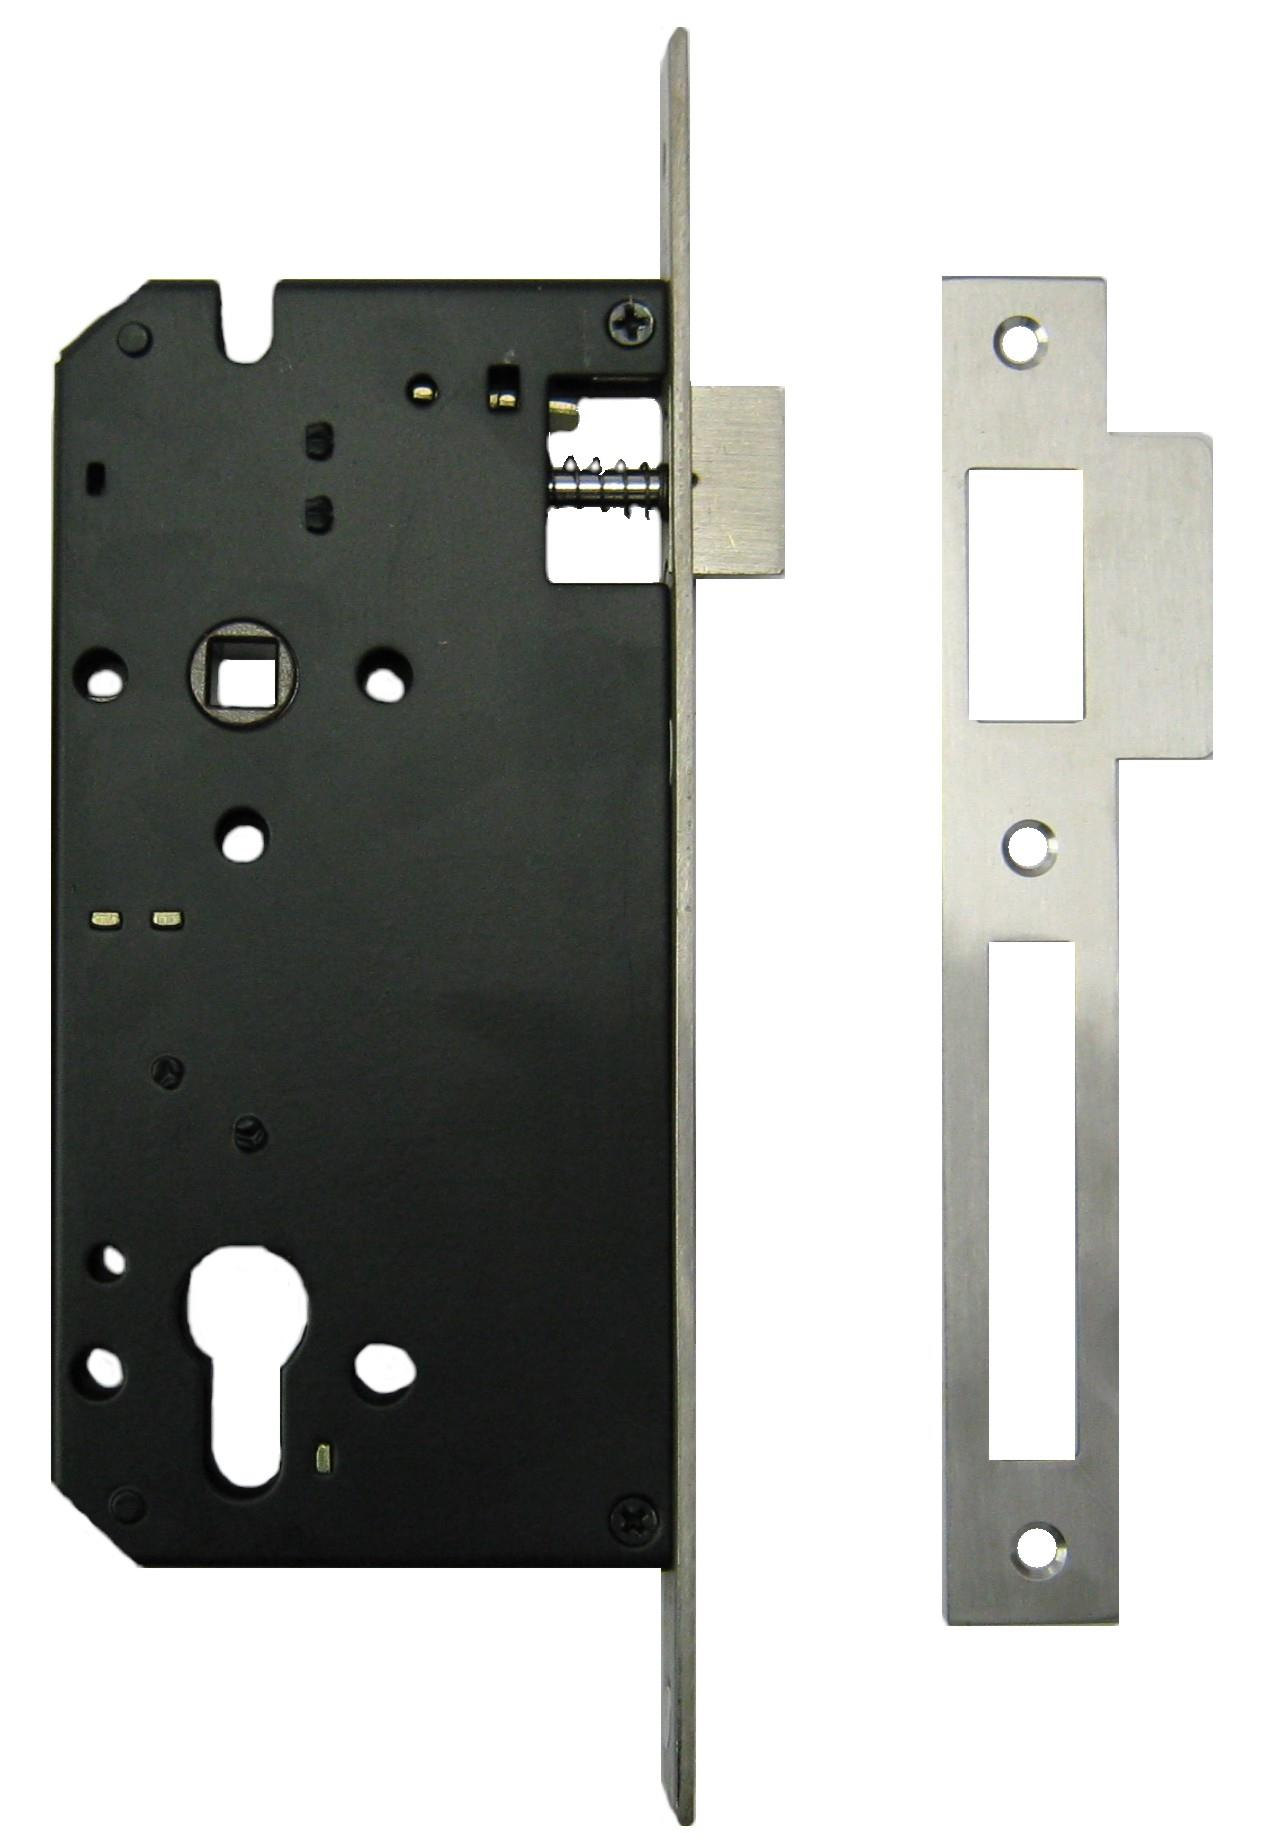 Q(R)60x85NM - Upright Euro Profile Lock Case with Double Throw Dead Bolt